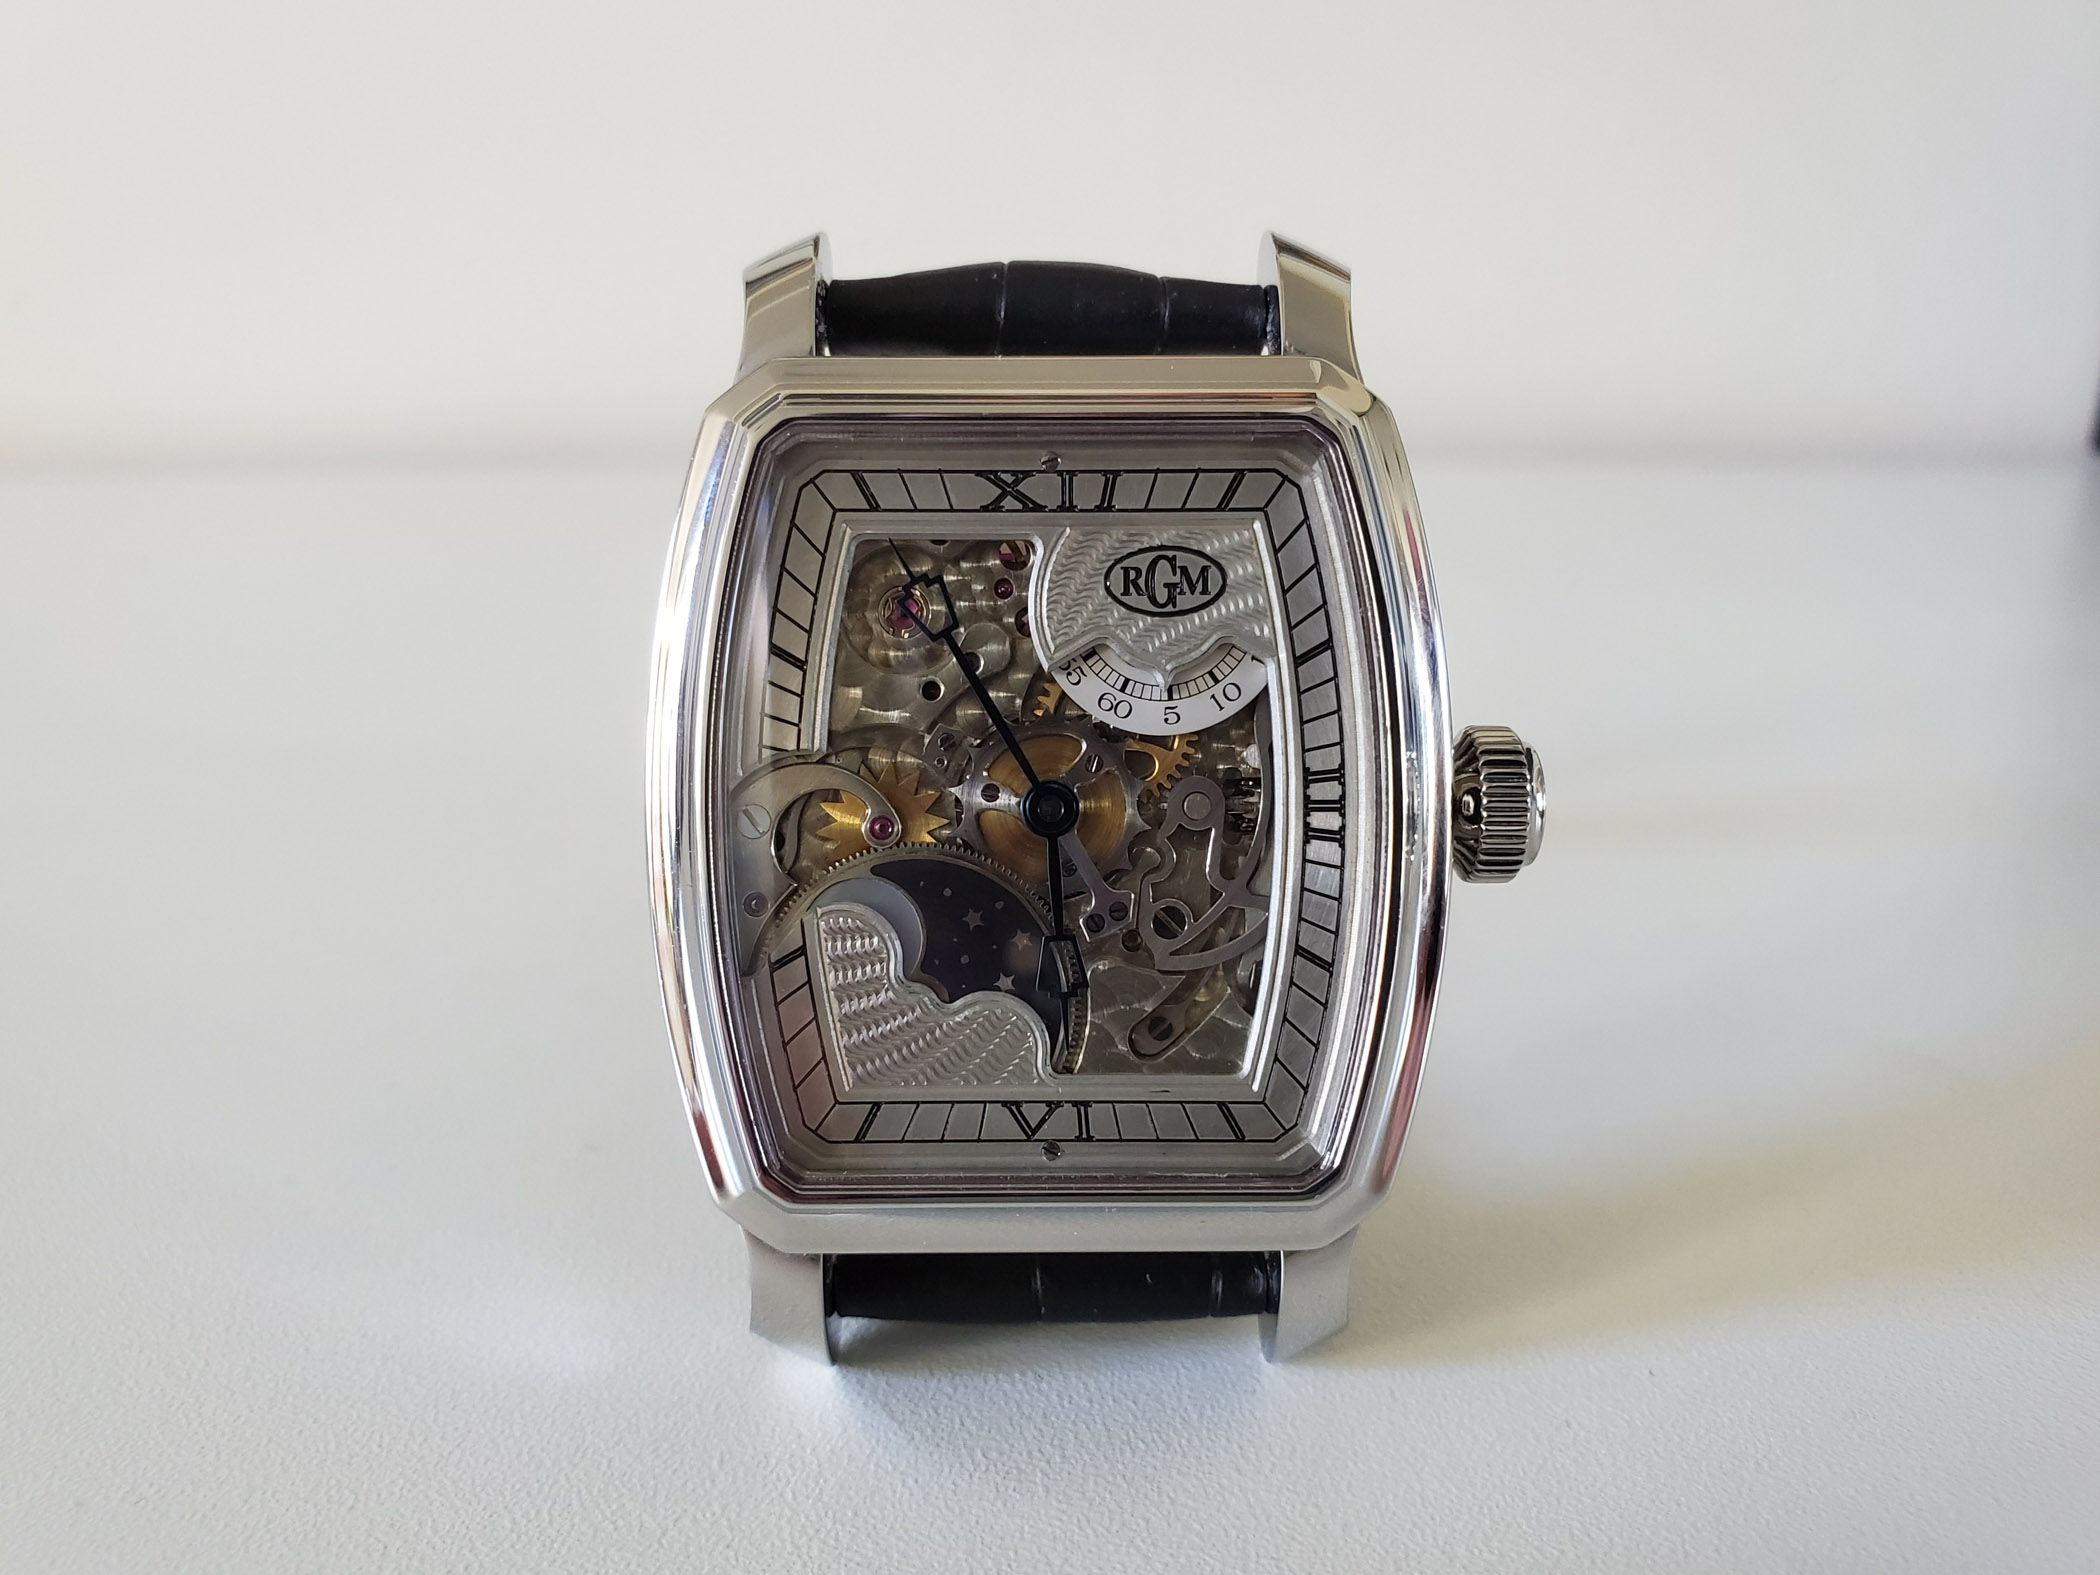 RGM Caliber 20 - Classic American-Made Watch - Review